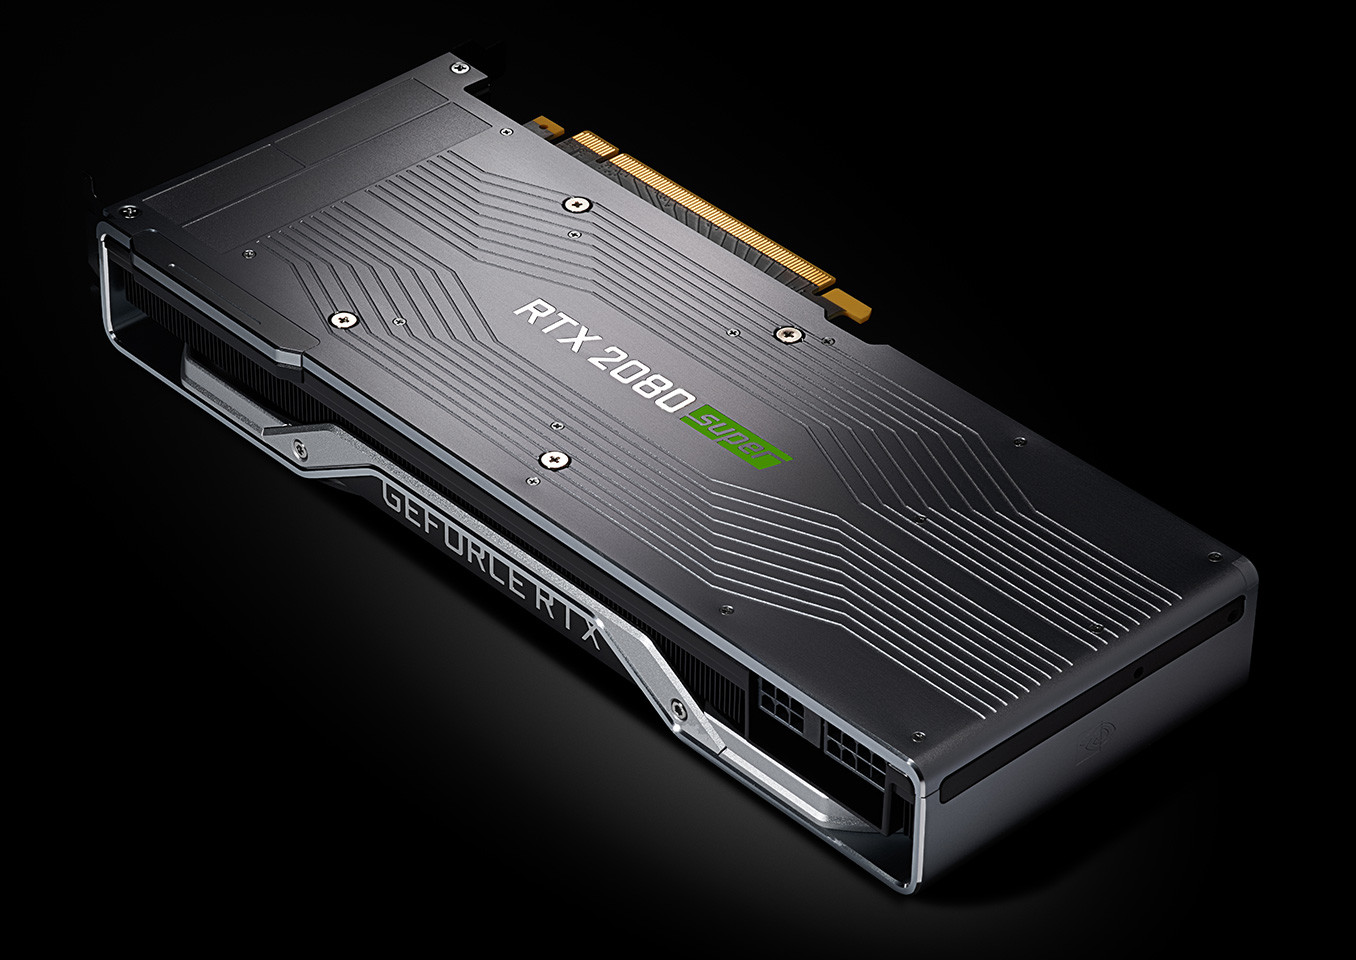 NVIDIA Launches the GeForce RTX 2080 Super Graphics Card